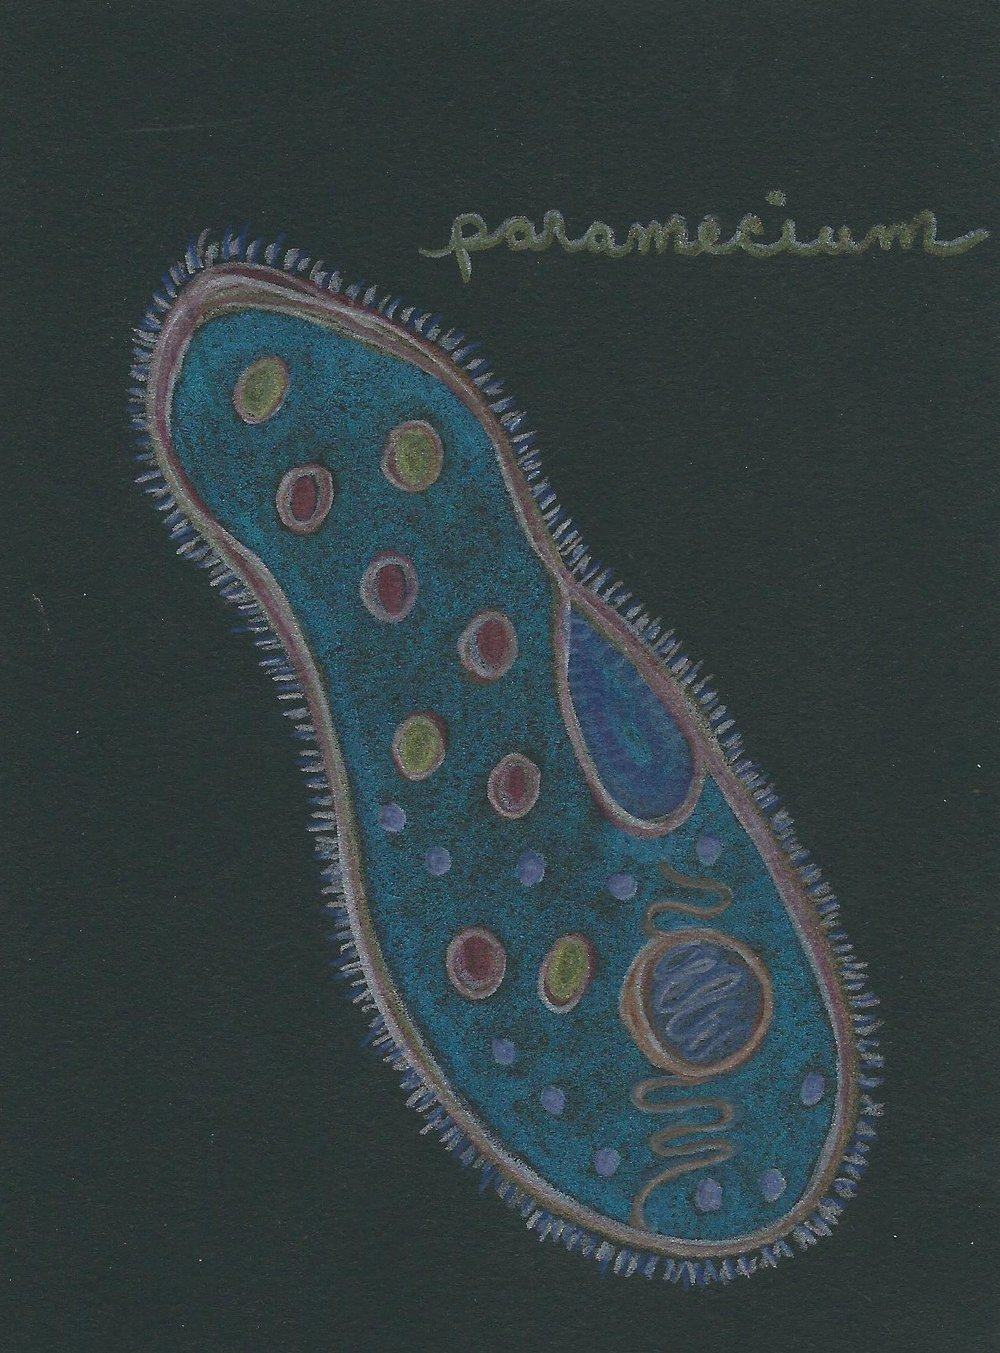 Ciliate.  Colored pencil on black paper